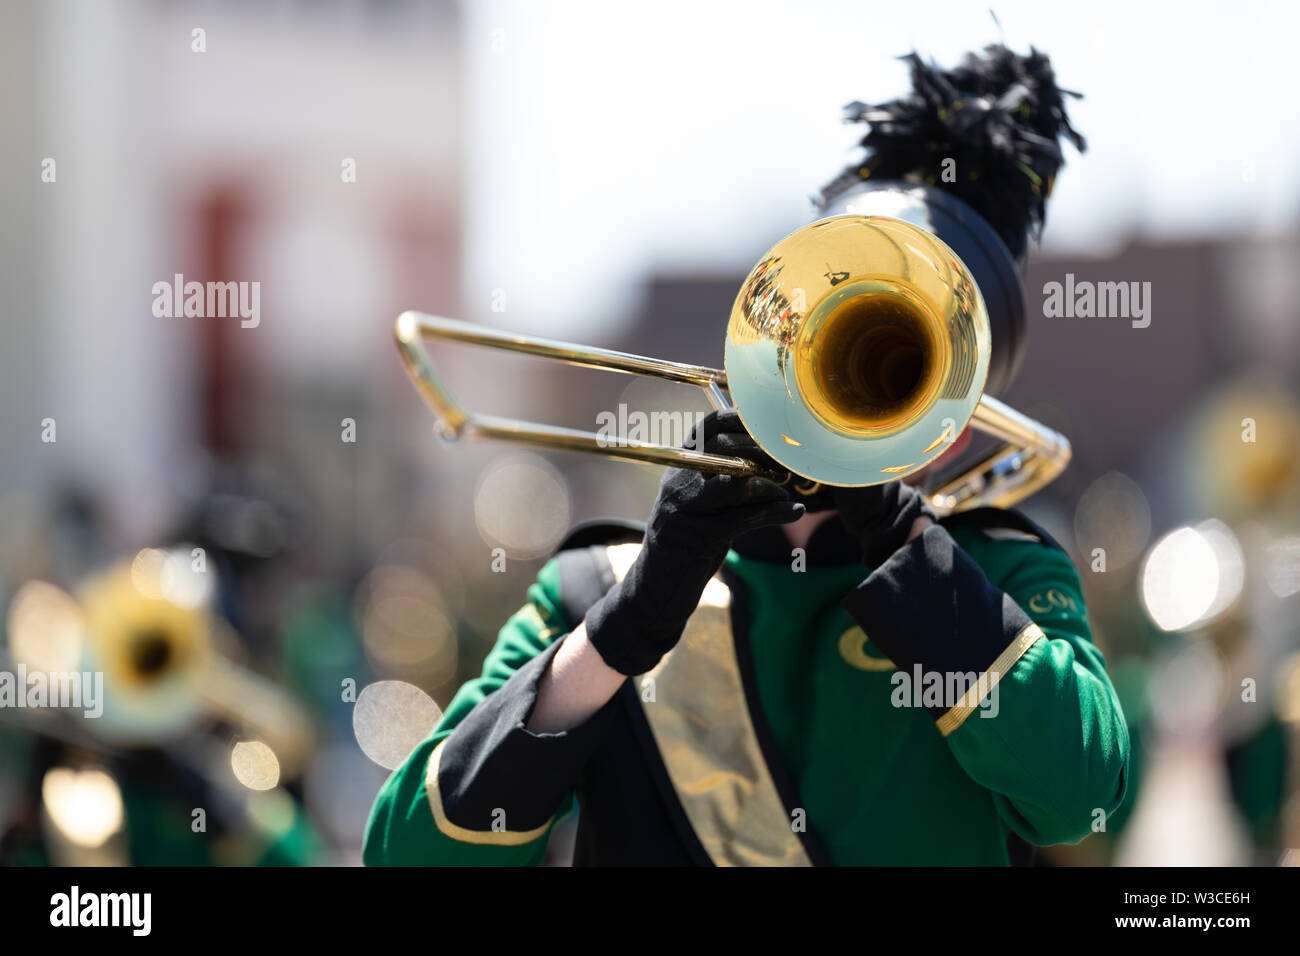 Benton Harbor, Michigan, USA - May 4, 2019: Blossomtime Festival Grand Floral Parade, Members of the Coloma High School Marching Band  performing at t - Stock Image